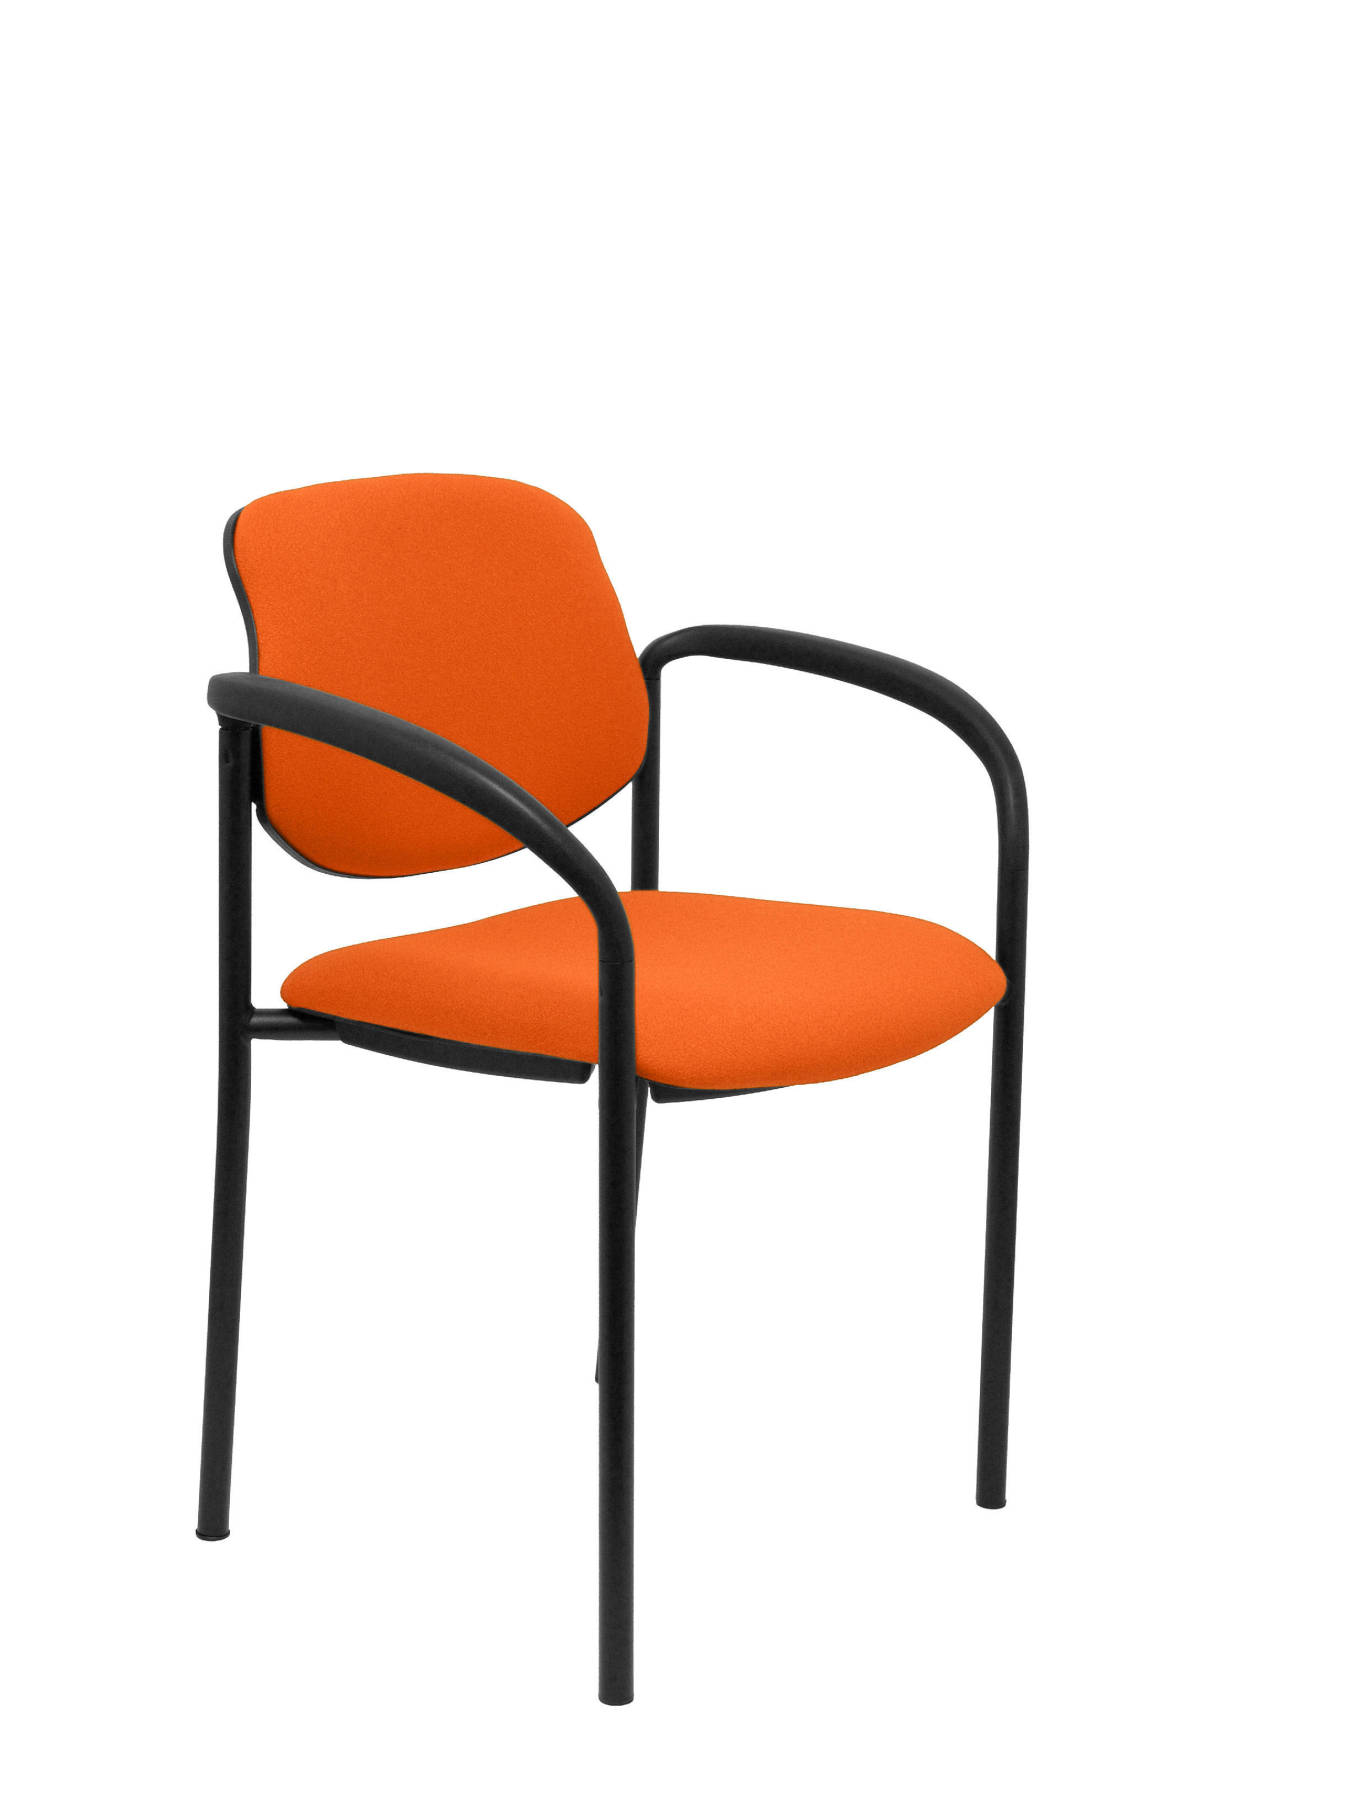 Visitor Chair 4's Topsy, With Arms And Estructrua Negro-up Seat And Backstop Upholstered In BALI Tissue Orange P